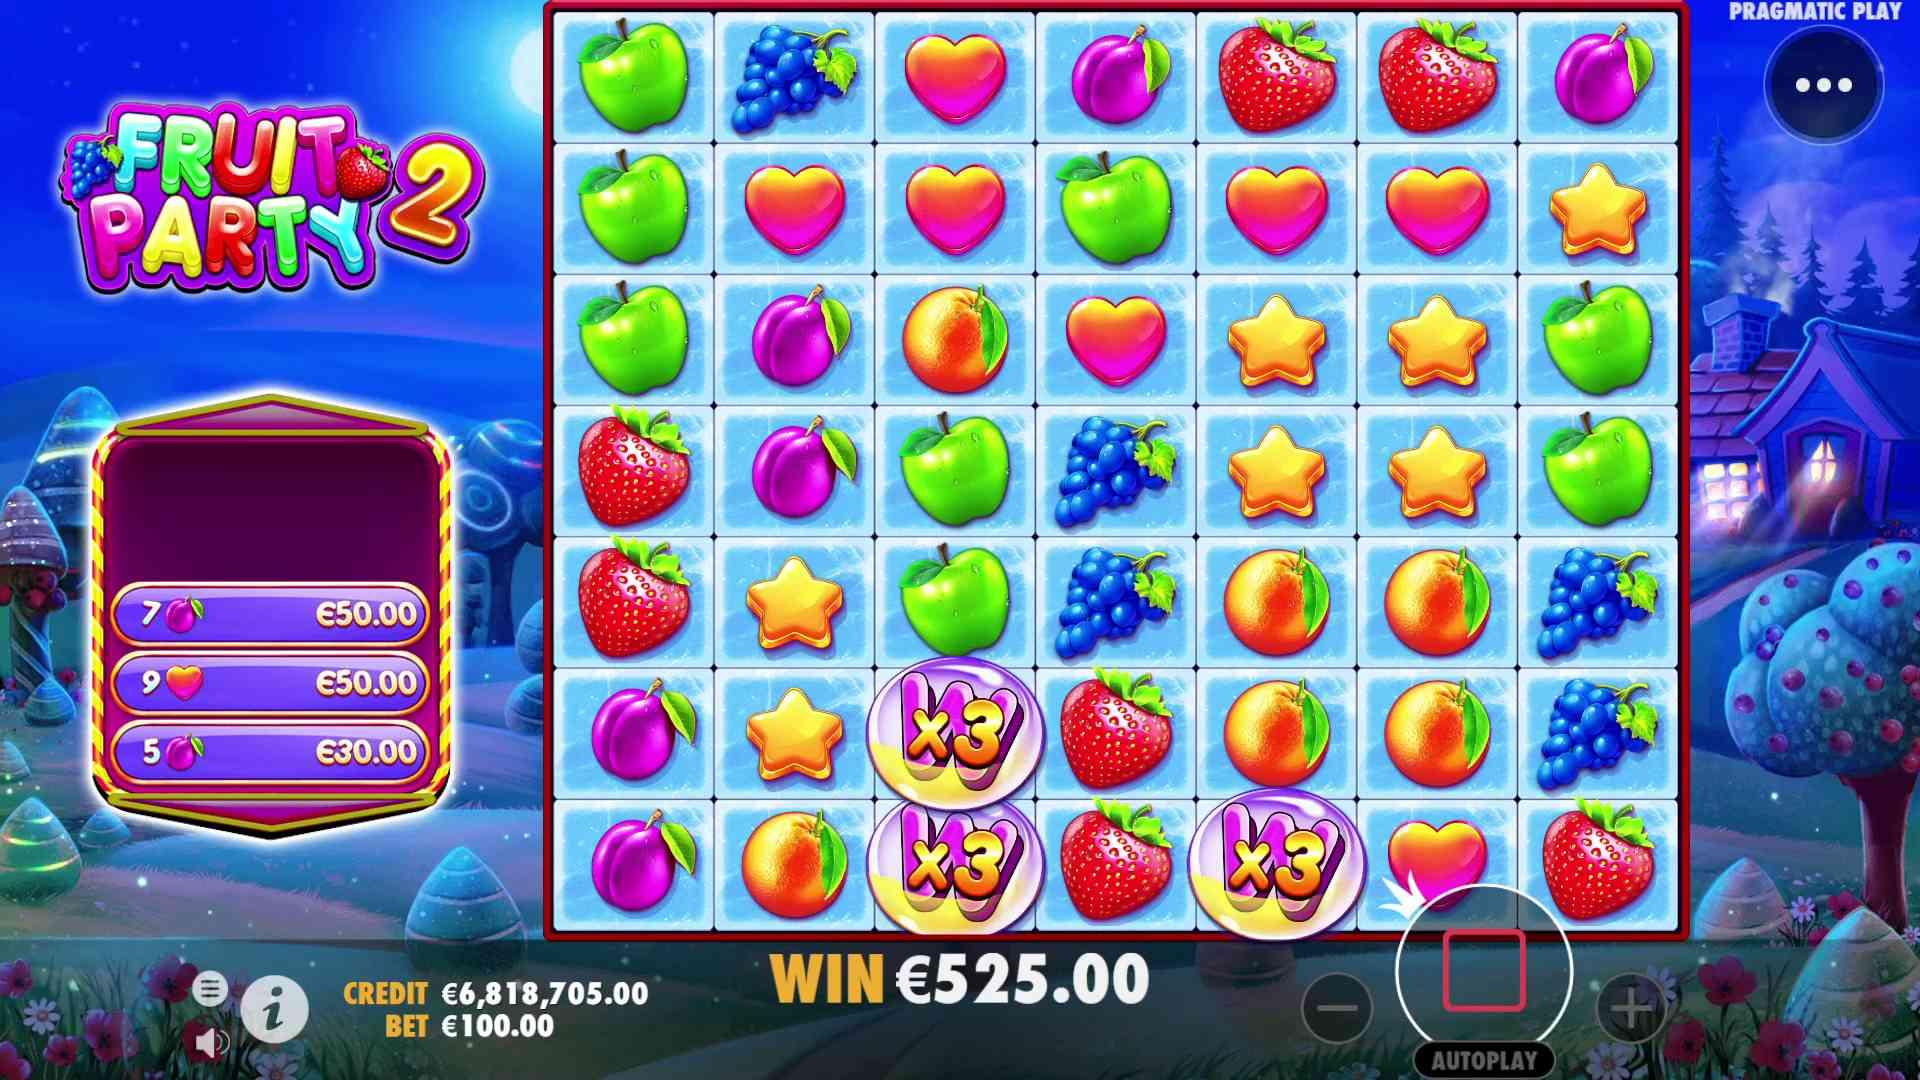 Fruit Party 2 Slot Free Spins